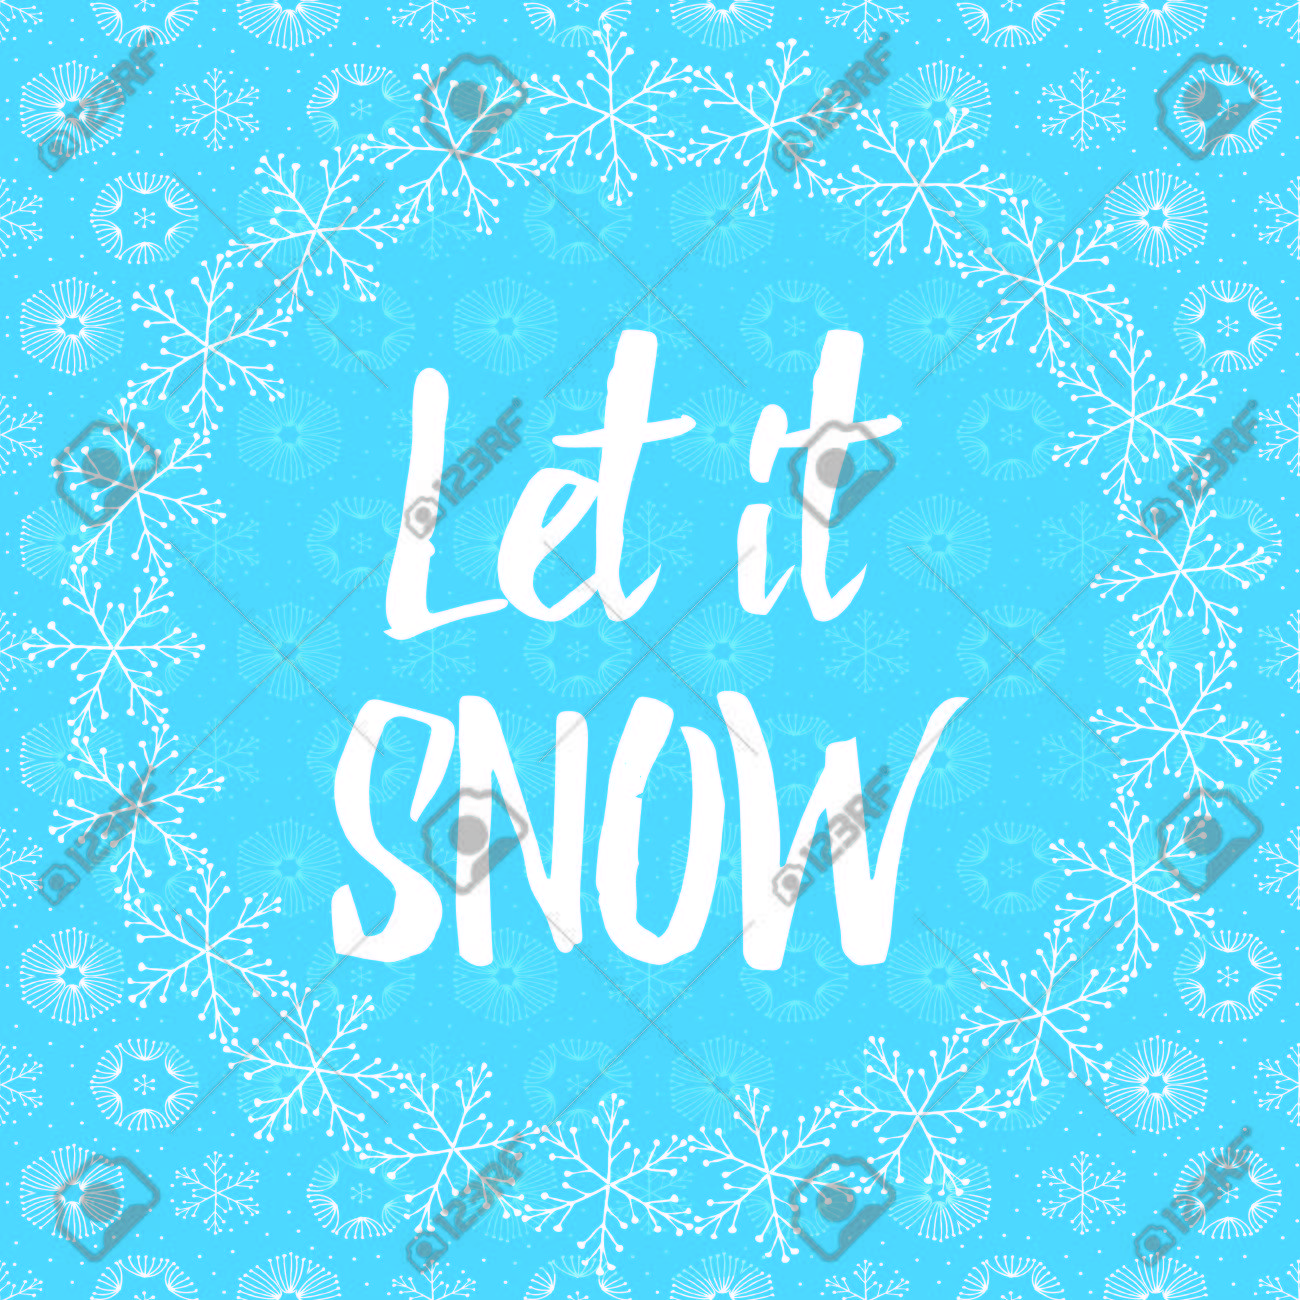 Let it snow letters covered with snowflakes on light blue snowy let it snow letters covered with snowflakes on light blue snowy background stock vector 49605657 madrichimfo Images